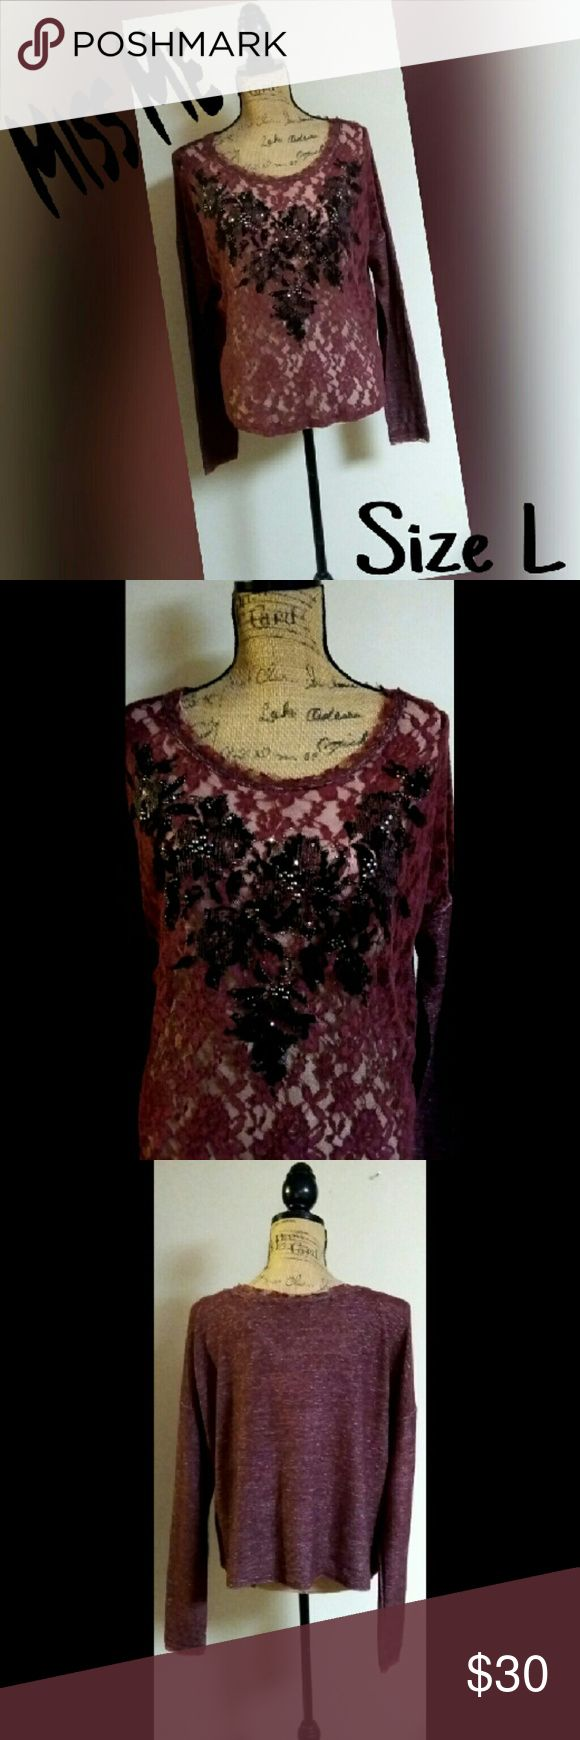 🆕MISS ME LONG SLEEVE LACE TOP SZ L SUPER CUTE. PERFECT PREOWNEND CONDITION. NO RIPS, HOLES, STAINS OR TEARS.  SHEER LACE FRONT. I HAVE A BEIGE CAMI UNDERNEATH AS THIS IS COMPLETELY SEE THROUGH. ANY QUESTIONS PLEASE ASK BEFORE YOU BUY. THANKS. Miss Me Tops